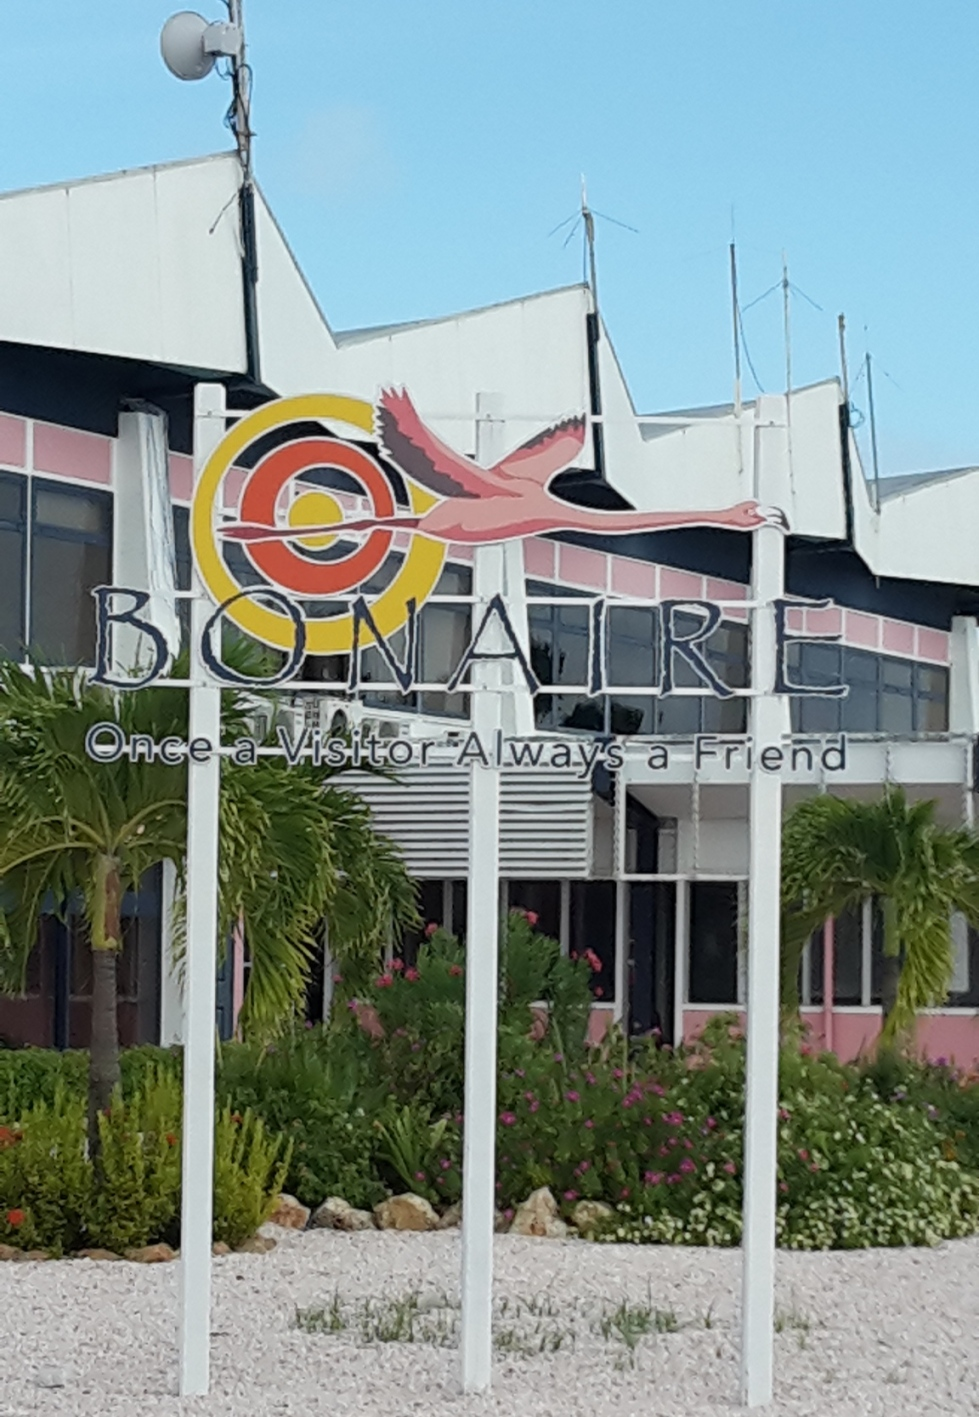 Bonaire airport sign